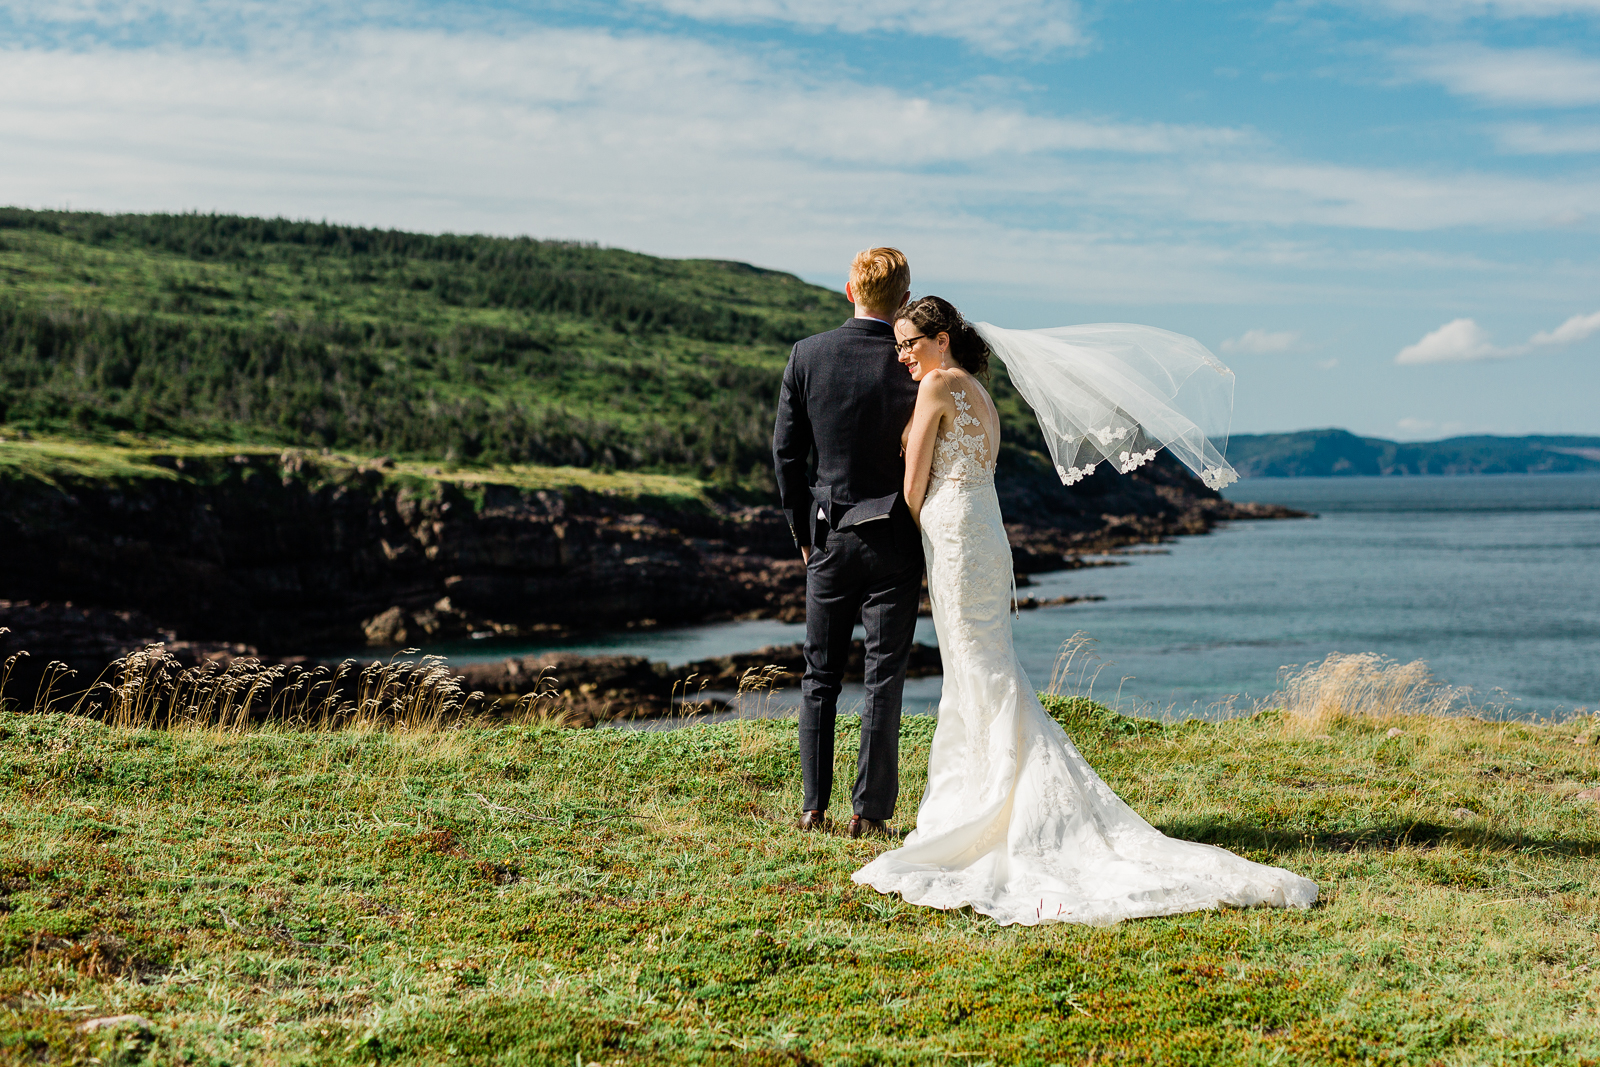 0047st-johns-newfoundland-wedding-photographer-manuels-river.jpg